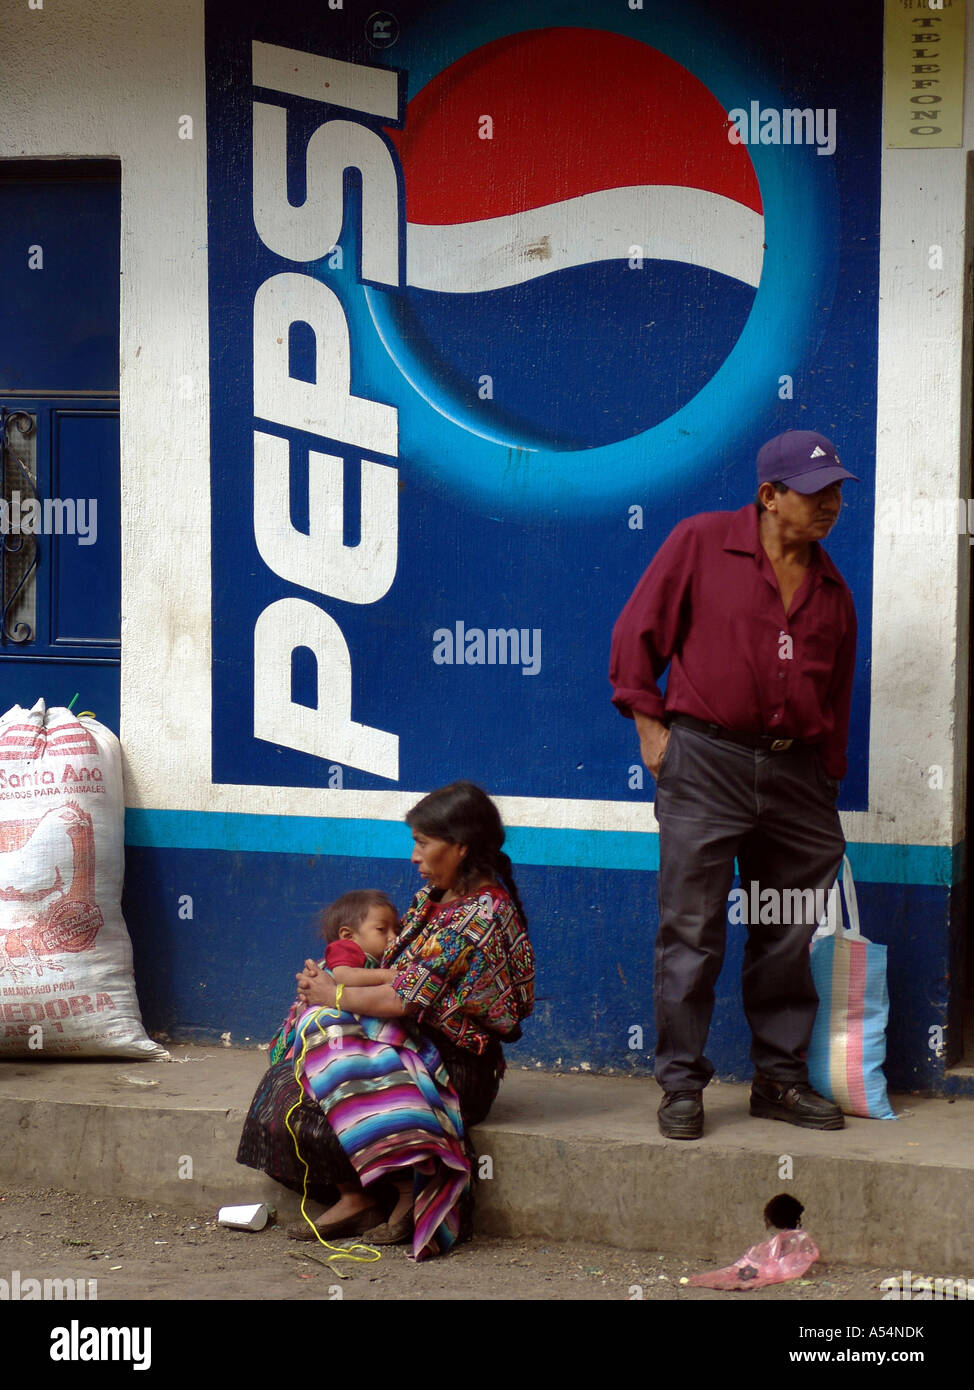 Painet ip1697 guatemala mayans standing pepsi sign san lucas toliman country developing nation less economically - Stock Image